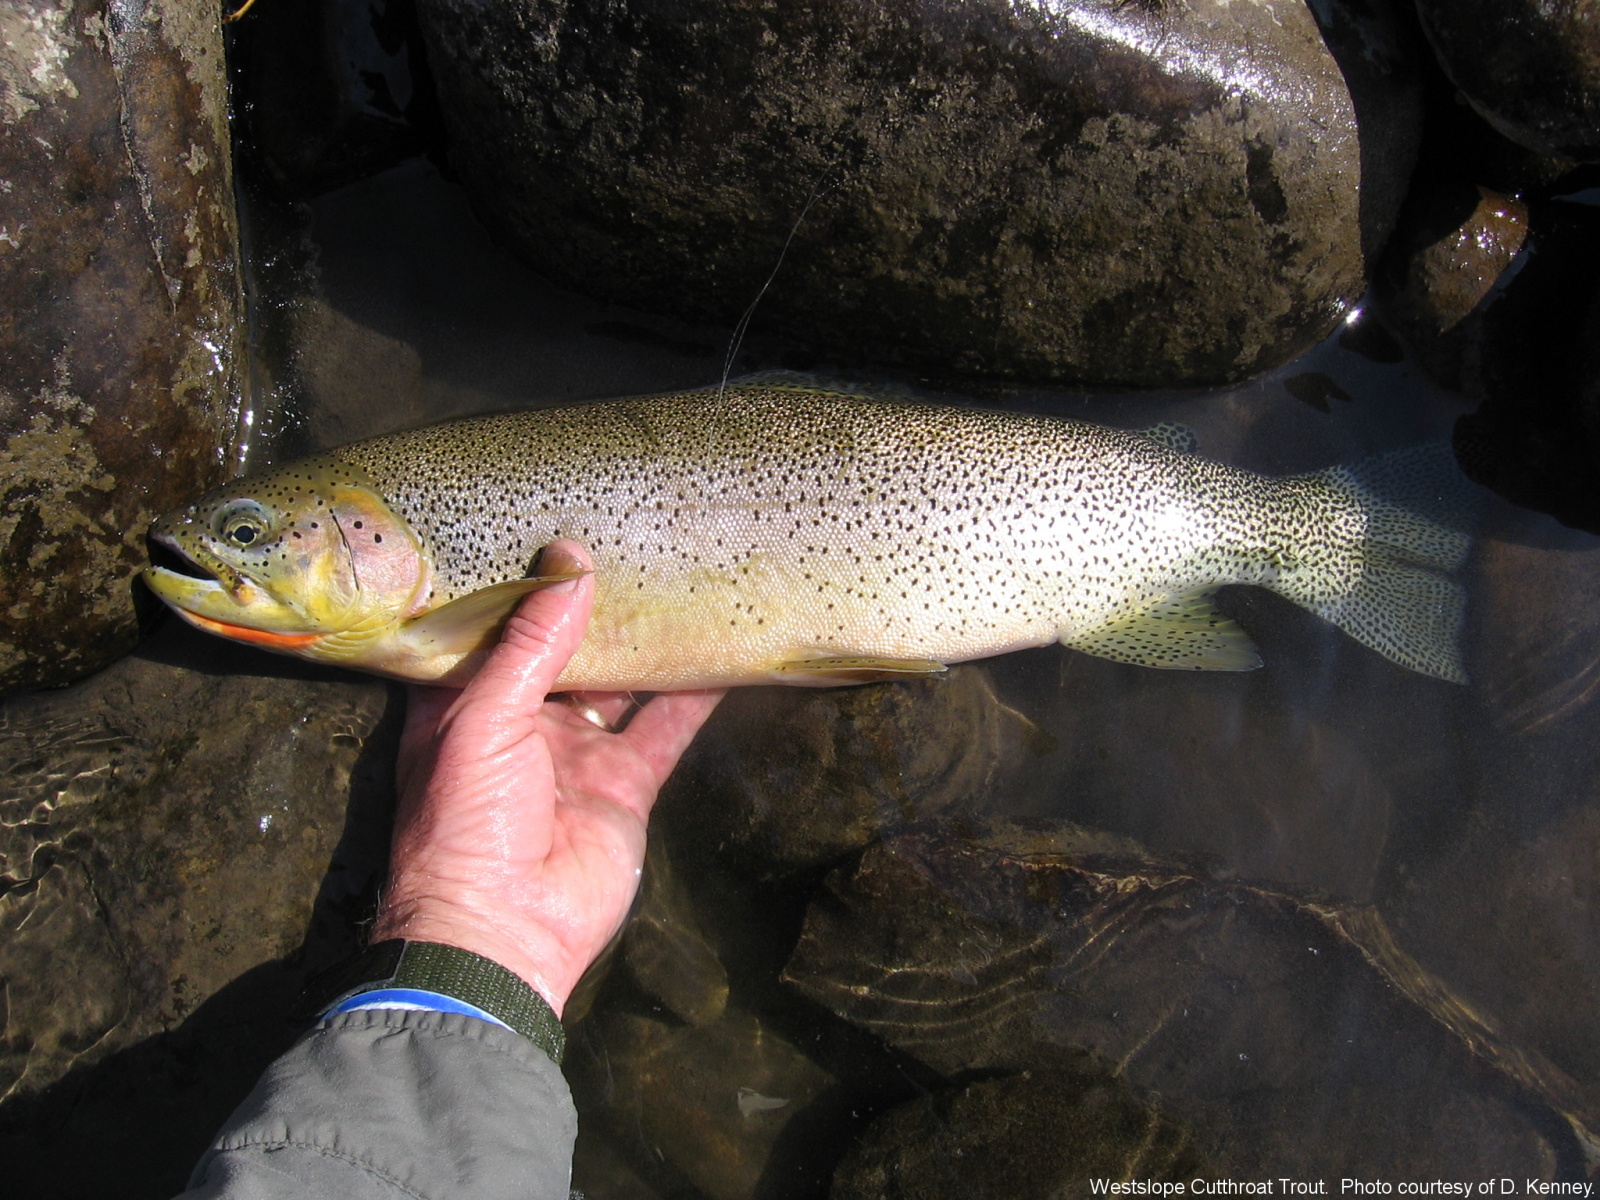 Westslope Cutthroat. Courtesy of D. Kenney